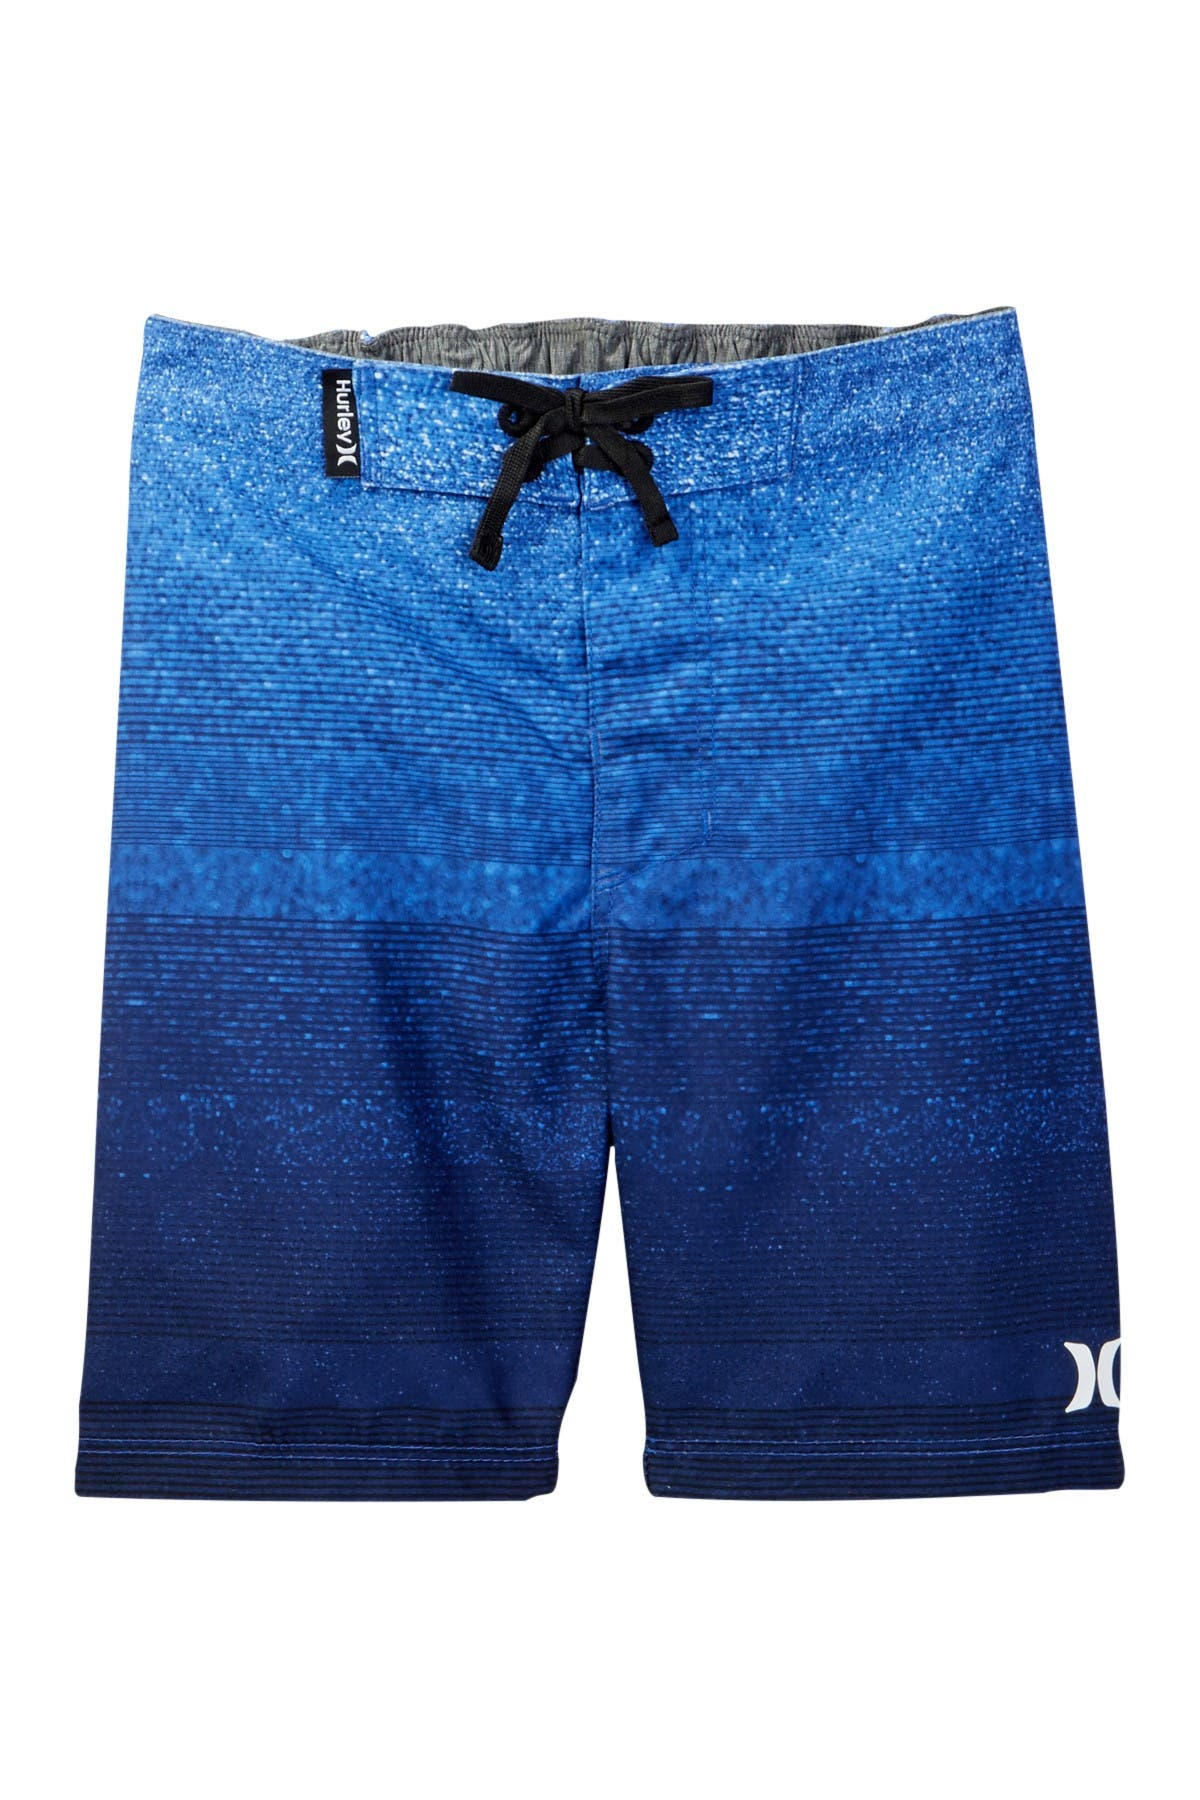 Image of Hurley Zion Board Shorts